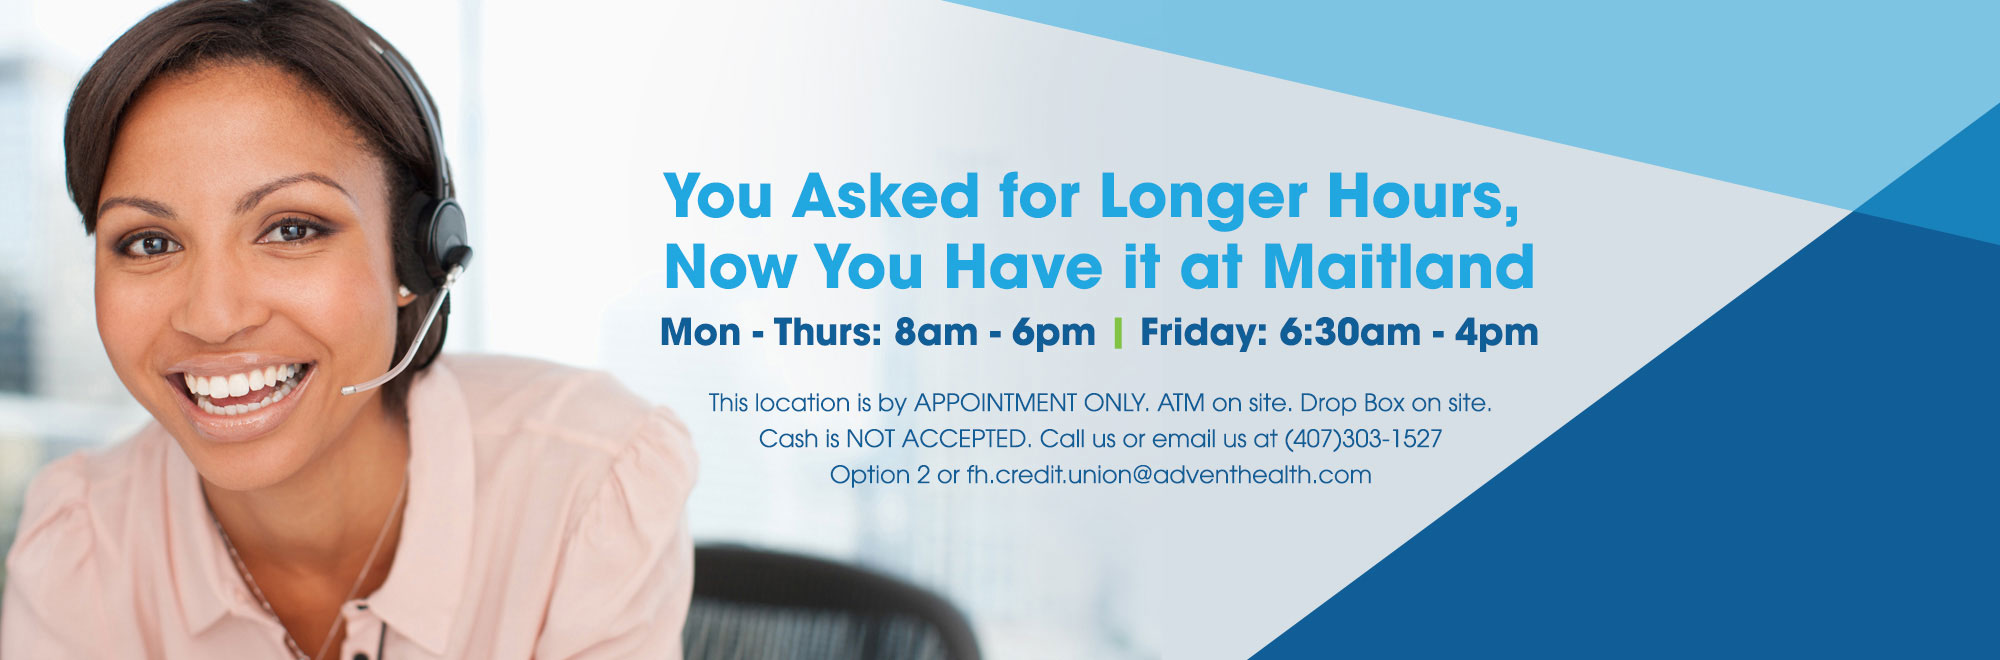 Our appointment only Maitland location is now open Mon - Thur 8a - 6p and Fri 6:30a - 4p.